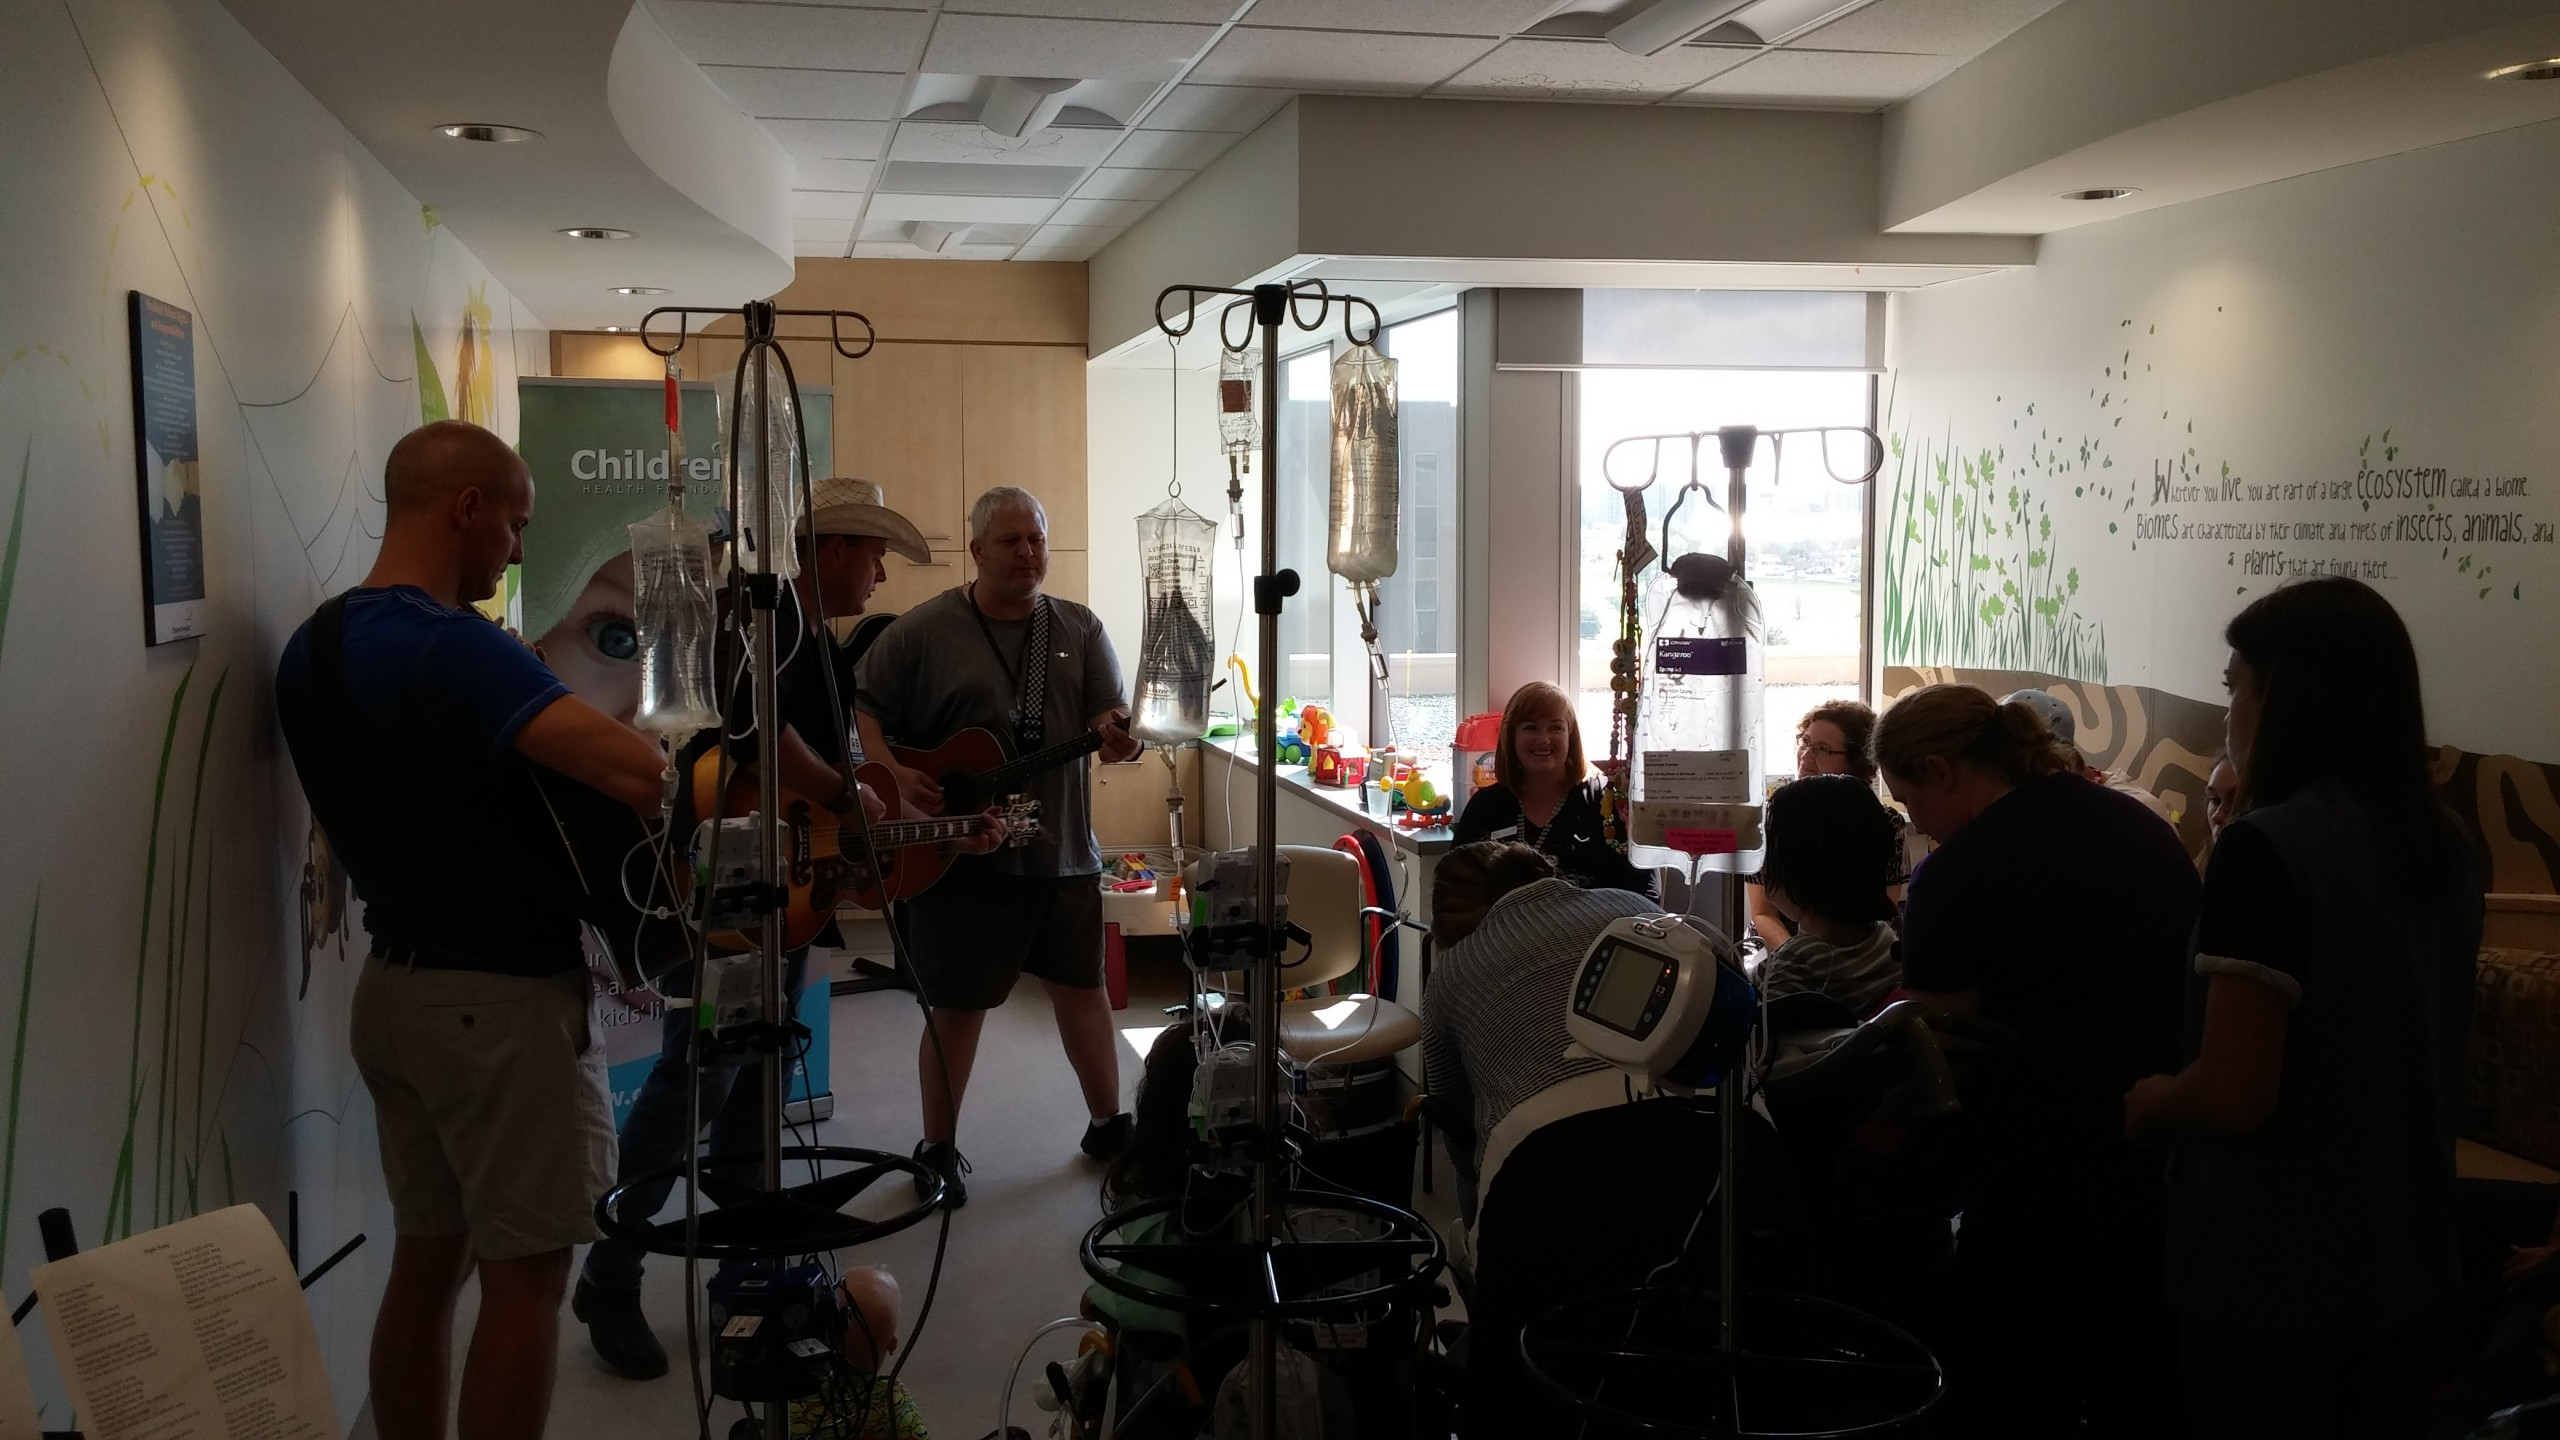 Bamford and his crew perform in front of a larger audience as more patients heard the music through the halls.